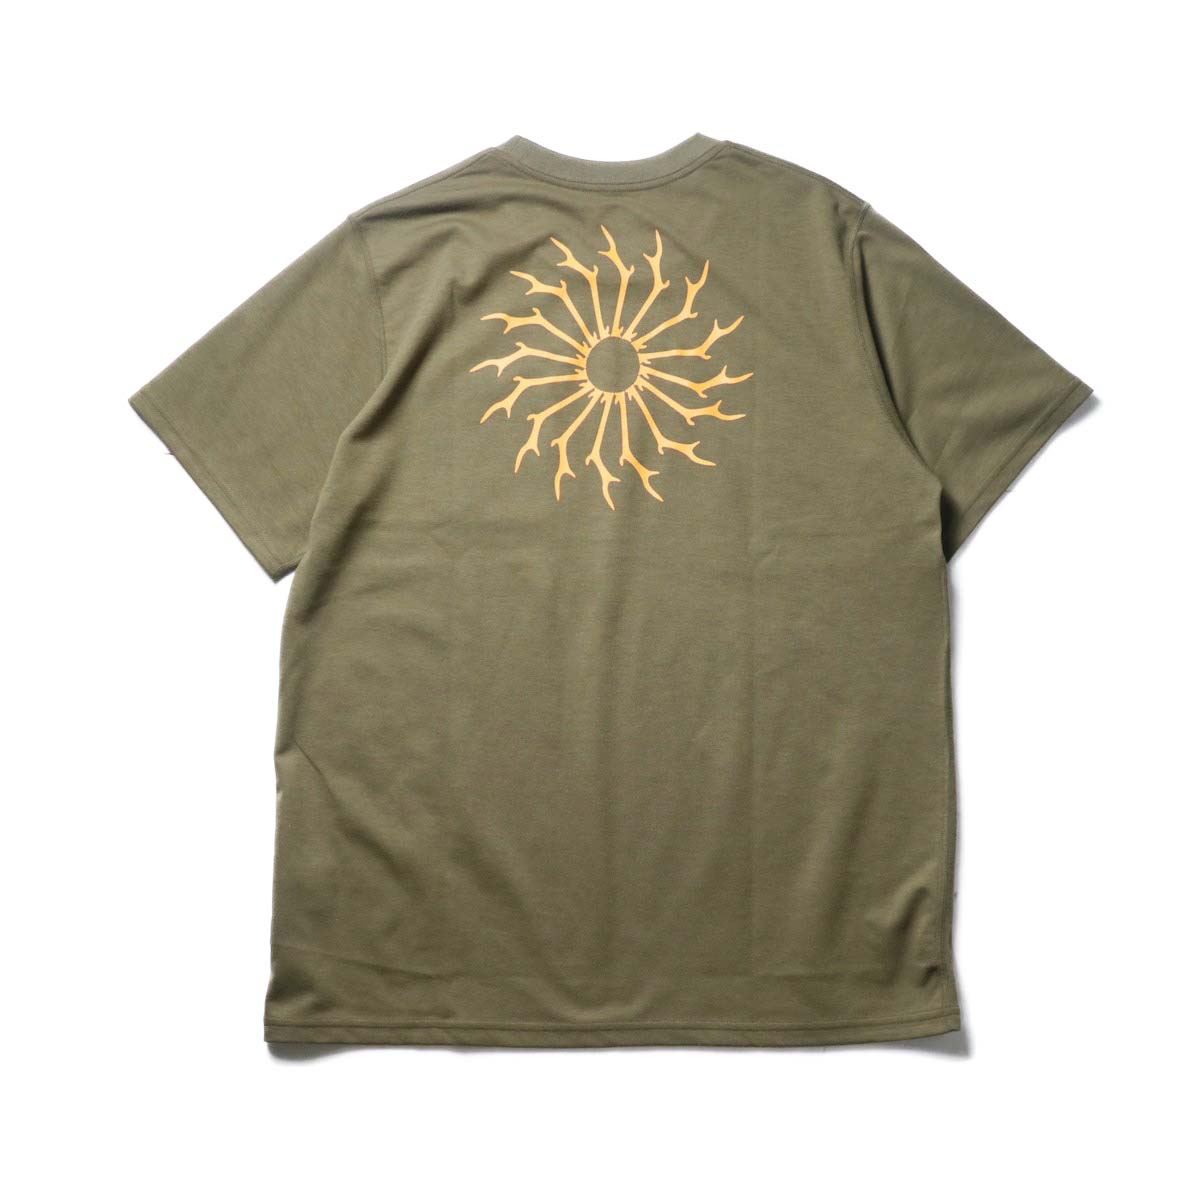 South2 West8 / S/S ROUND POCKET TEE - CIRCLE HORN (Olive)背面